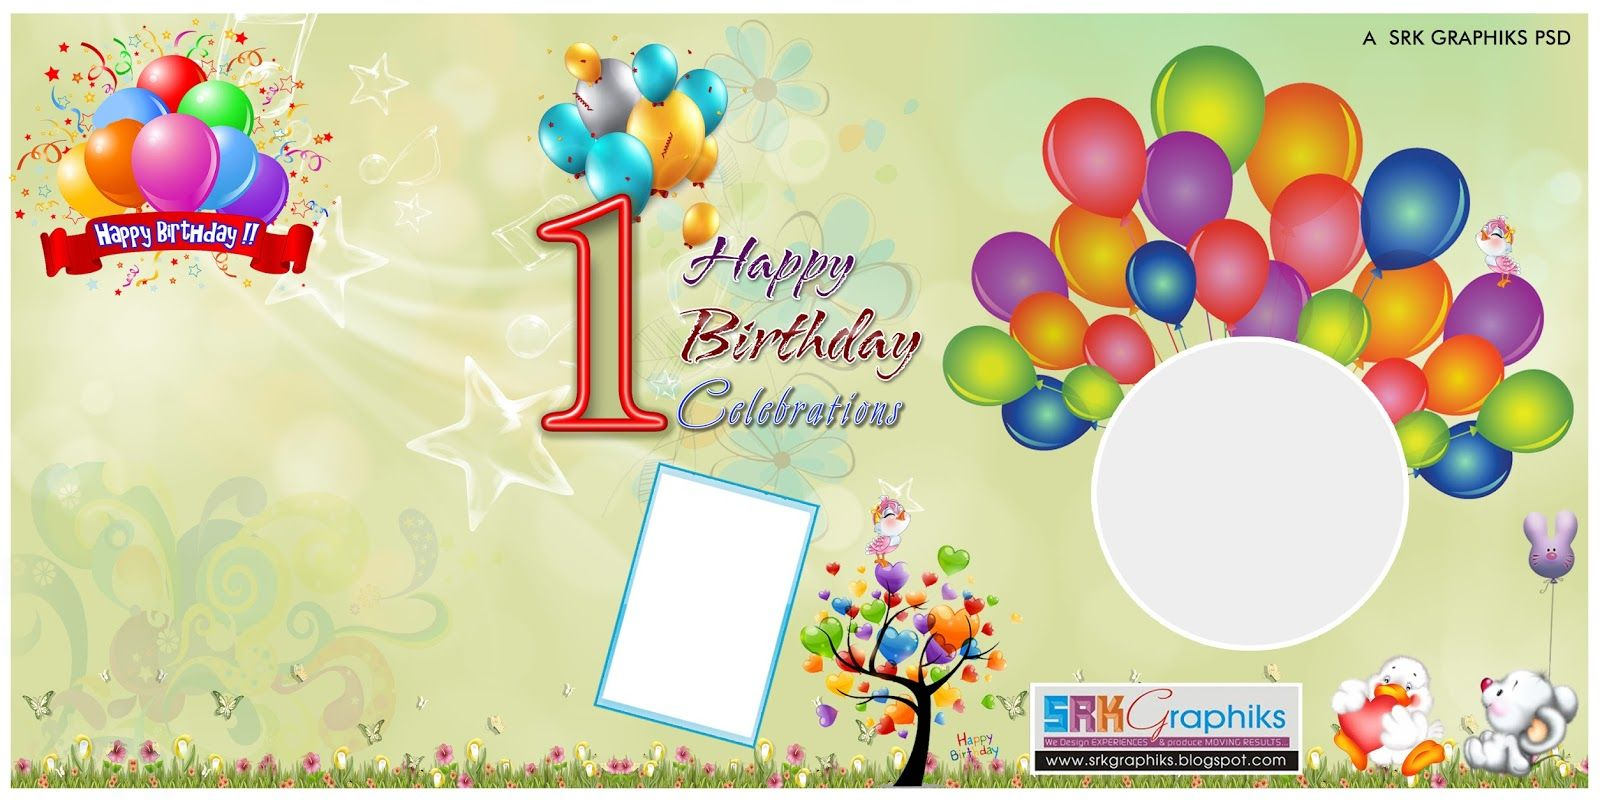 Birthday Banner Design Photoshop Template For Free Birthday Banner Template Free Birthday Banner Birthday Background Design